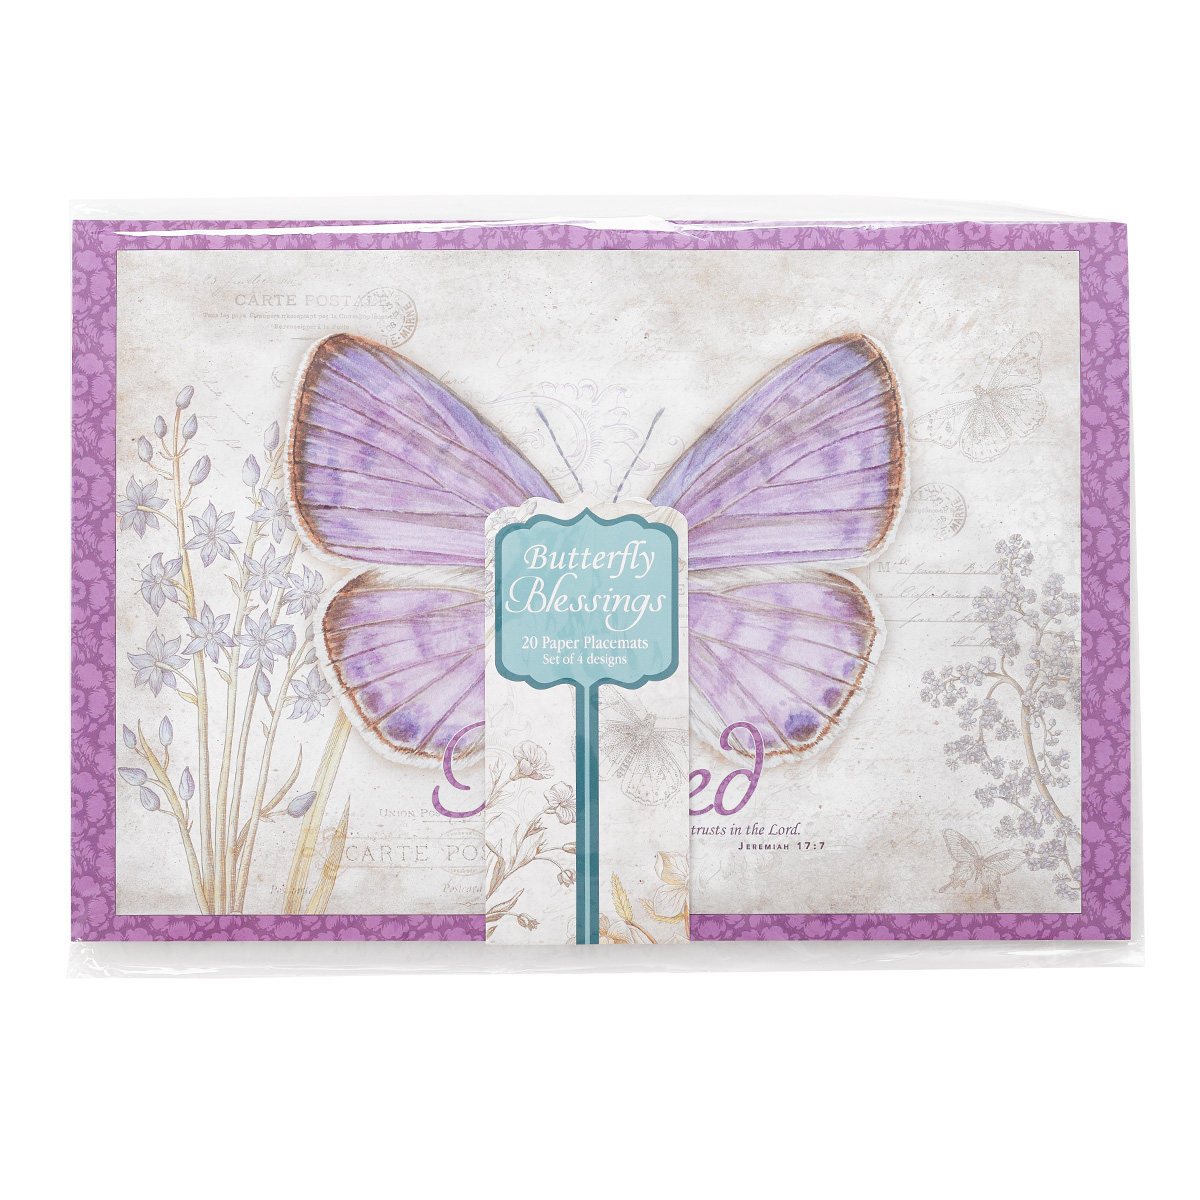 sc 1 st  Christian Art Gifts & Paper Placemats: Butterfly Blessings Set of 20